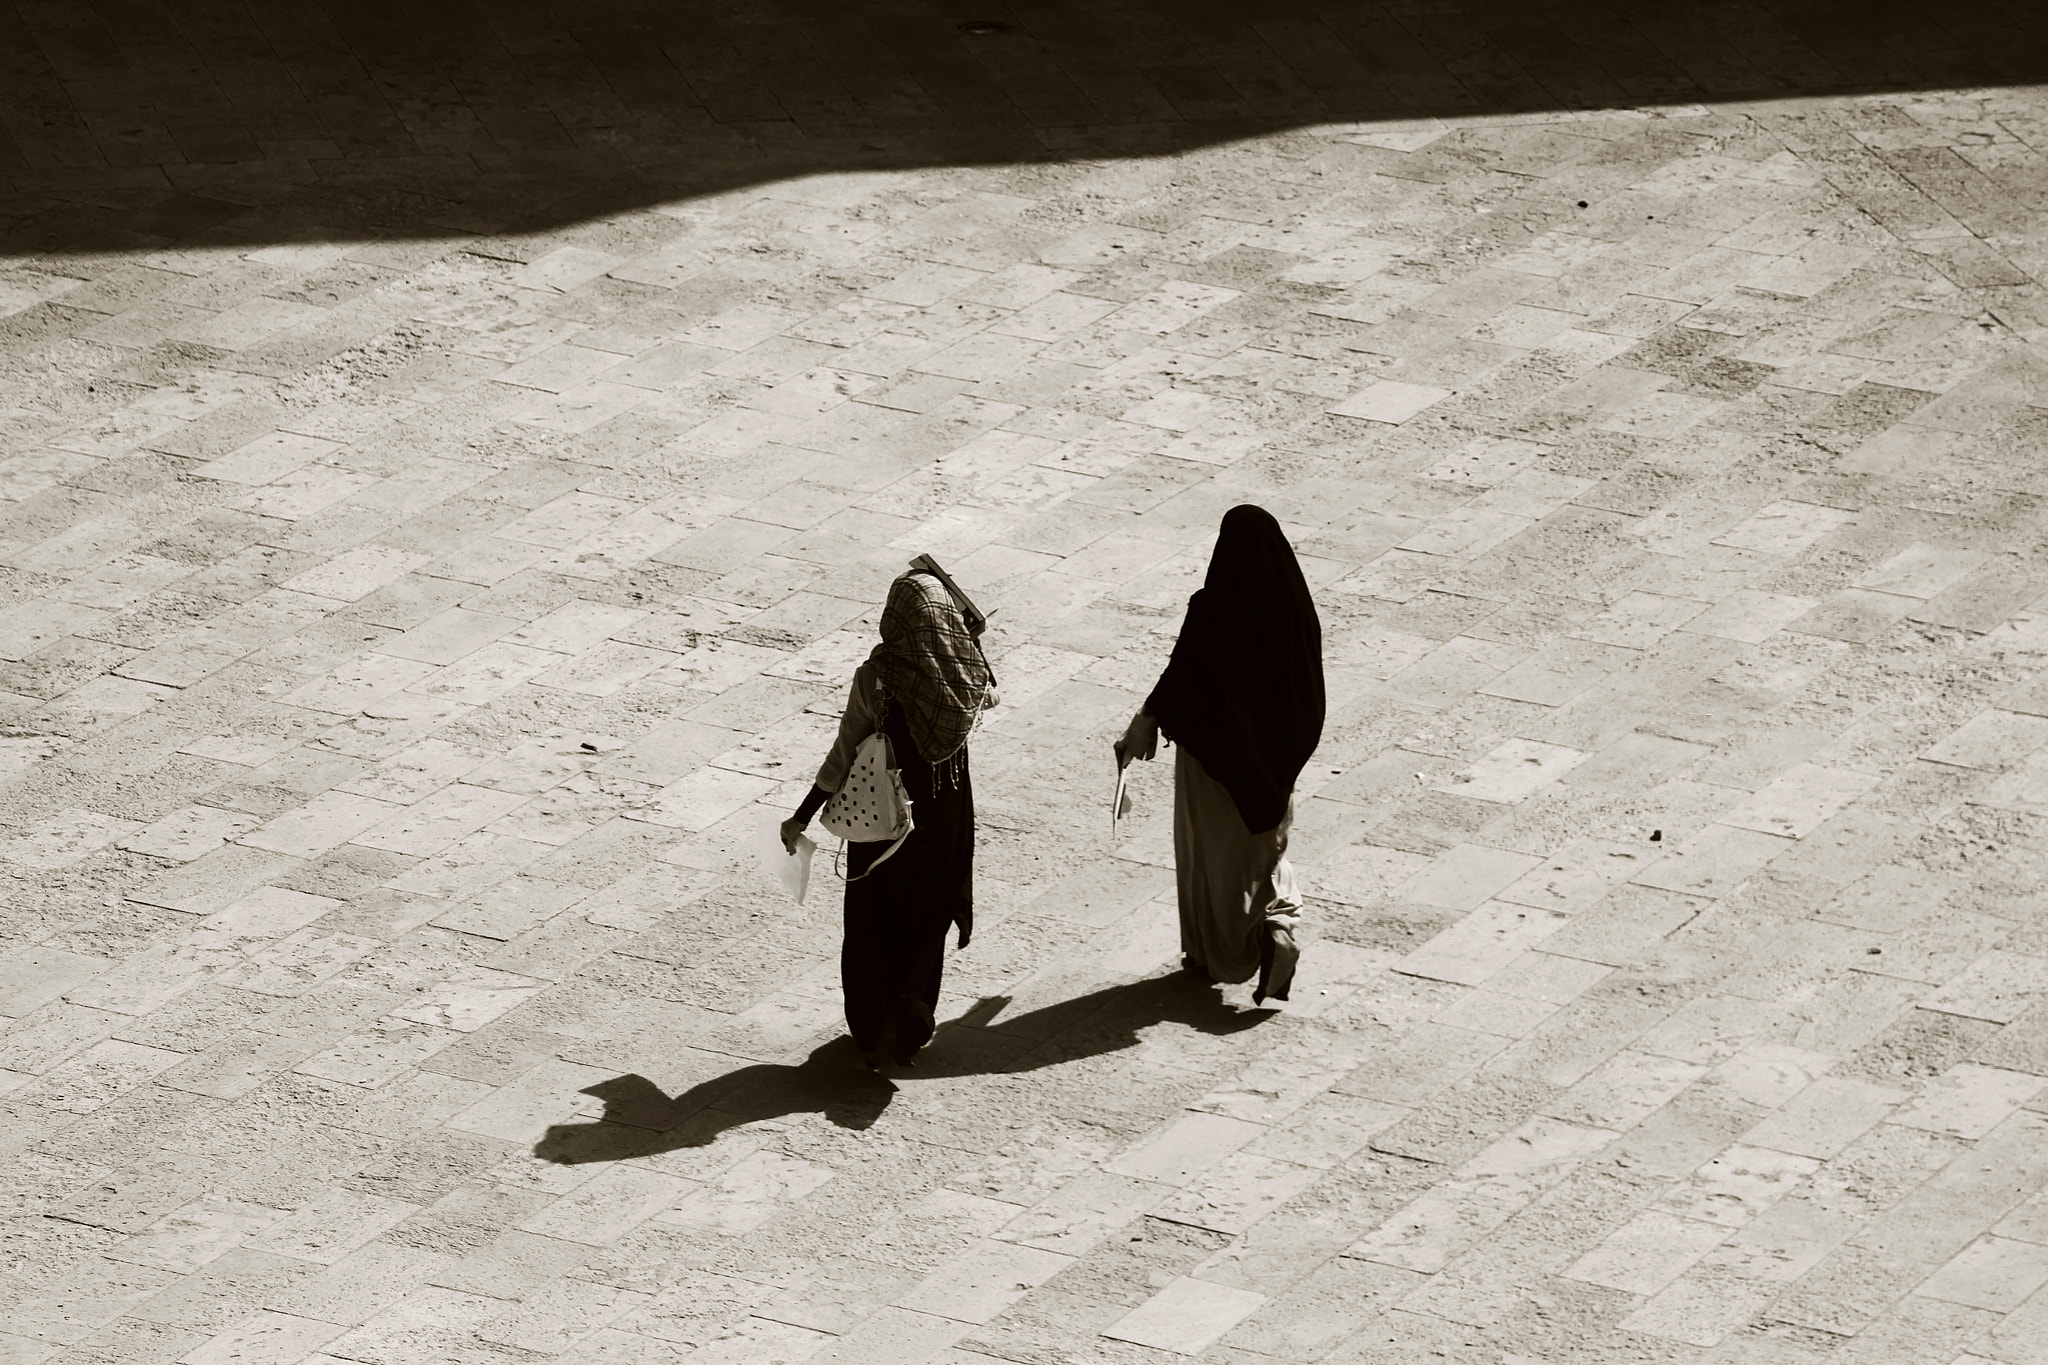 Photograph Shadows of walking people by AMJAD AGGAG on 500px